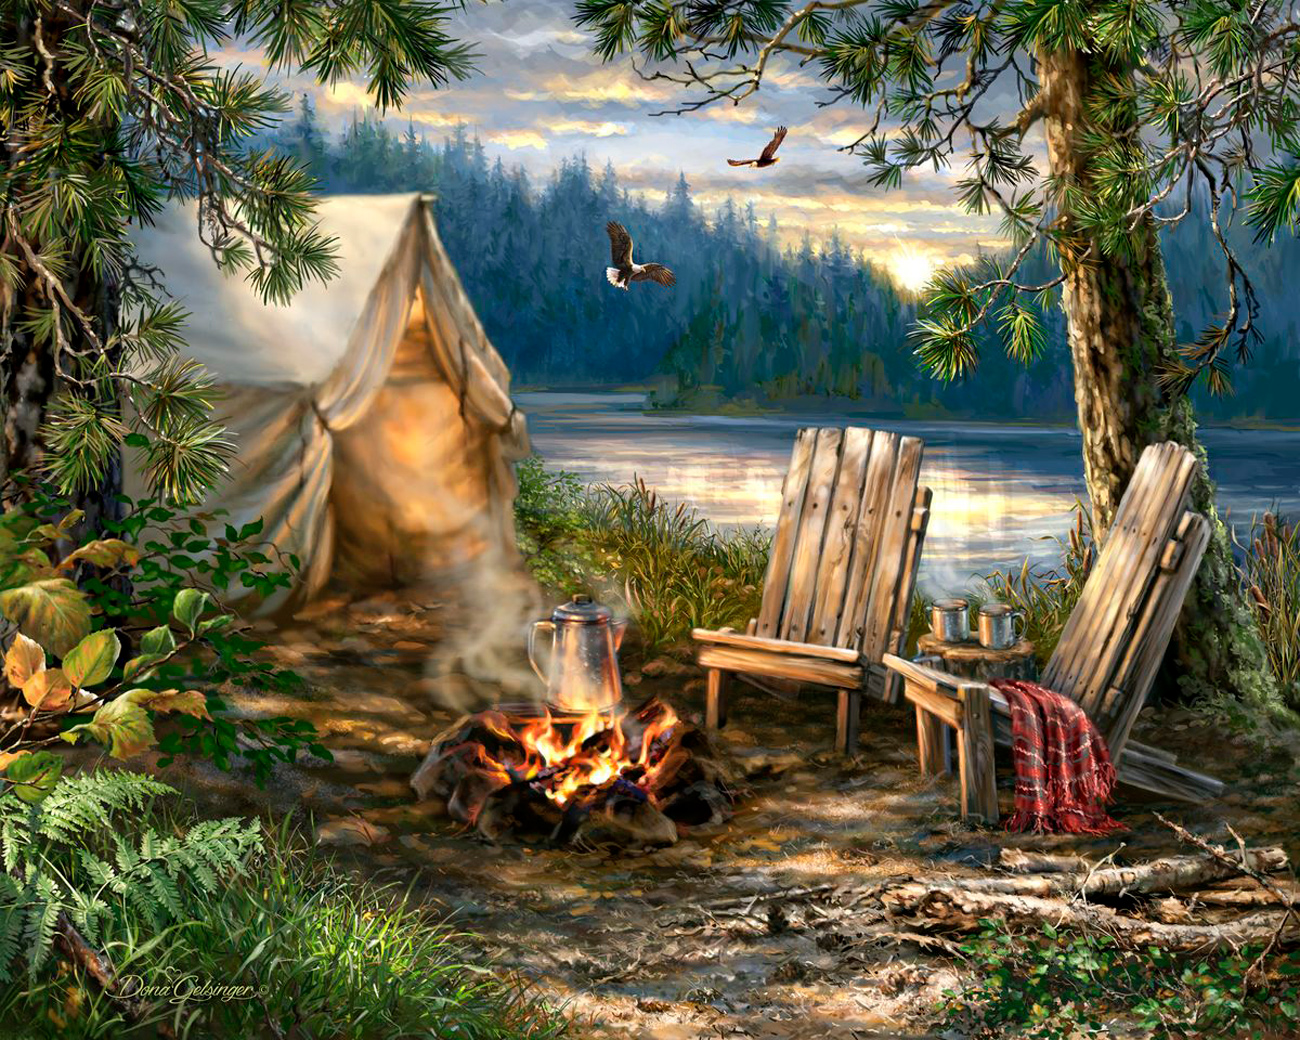 Evening At The Lake Outdoors Jigsaw Puzzle